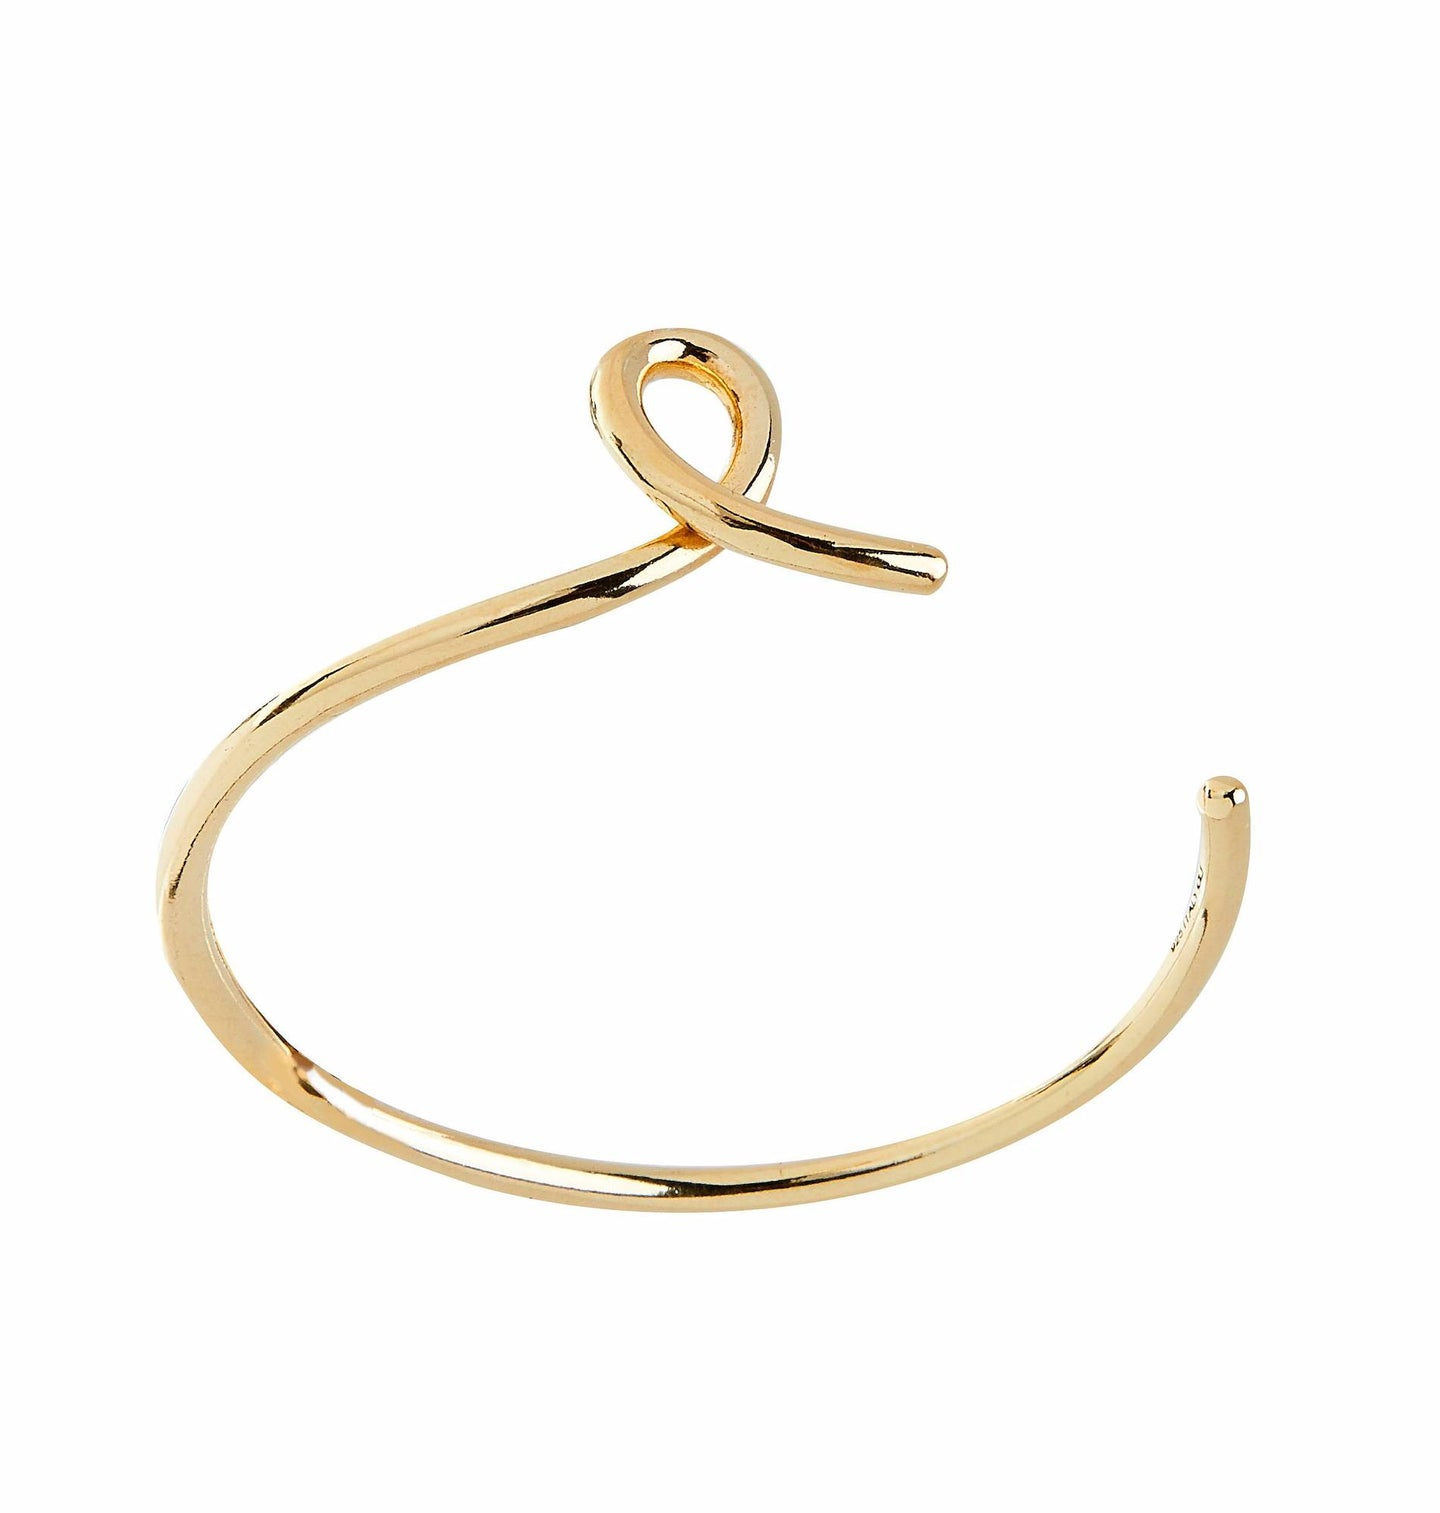 Loop Golden Bangle - Bracelet